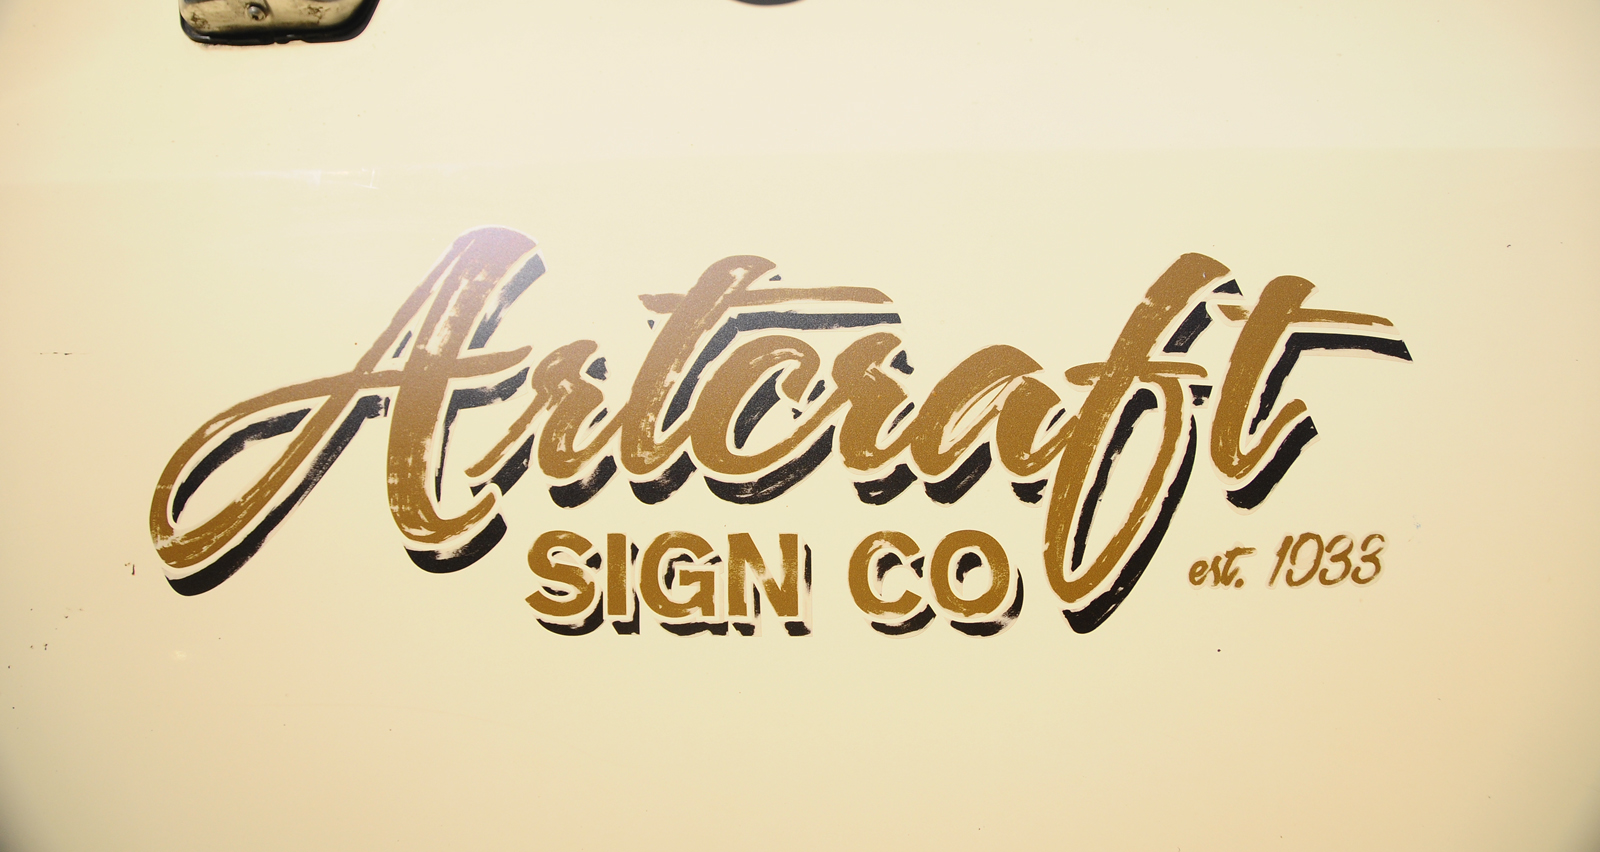 Decorative Window Decals For Home Vintage Truck Lettering Decal Sets Custom Amp Handmade